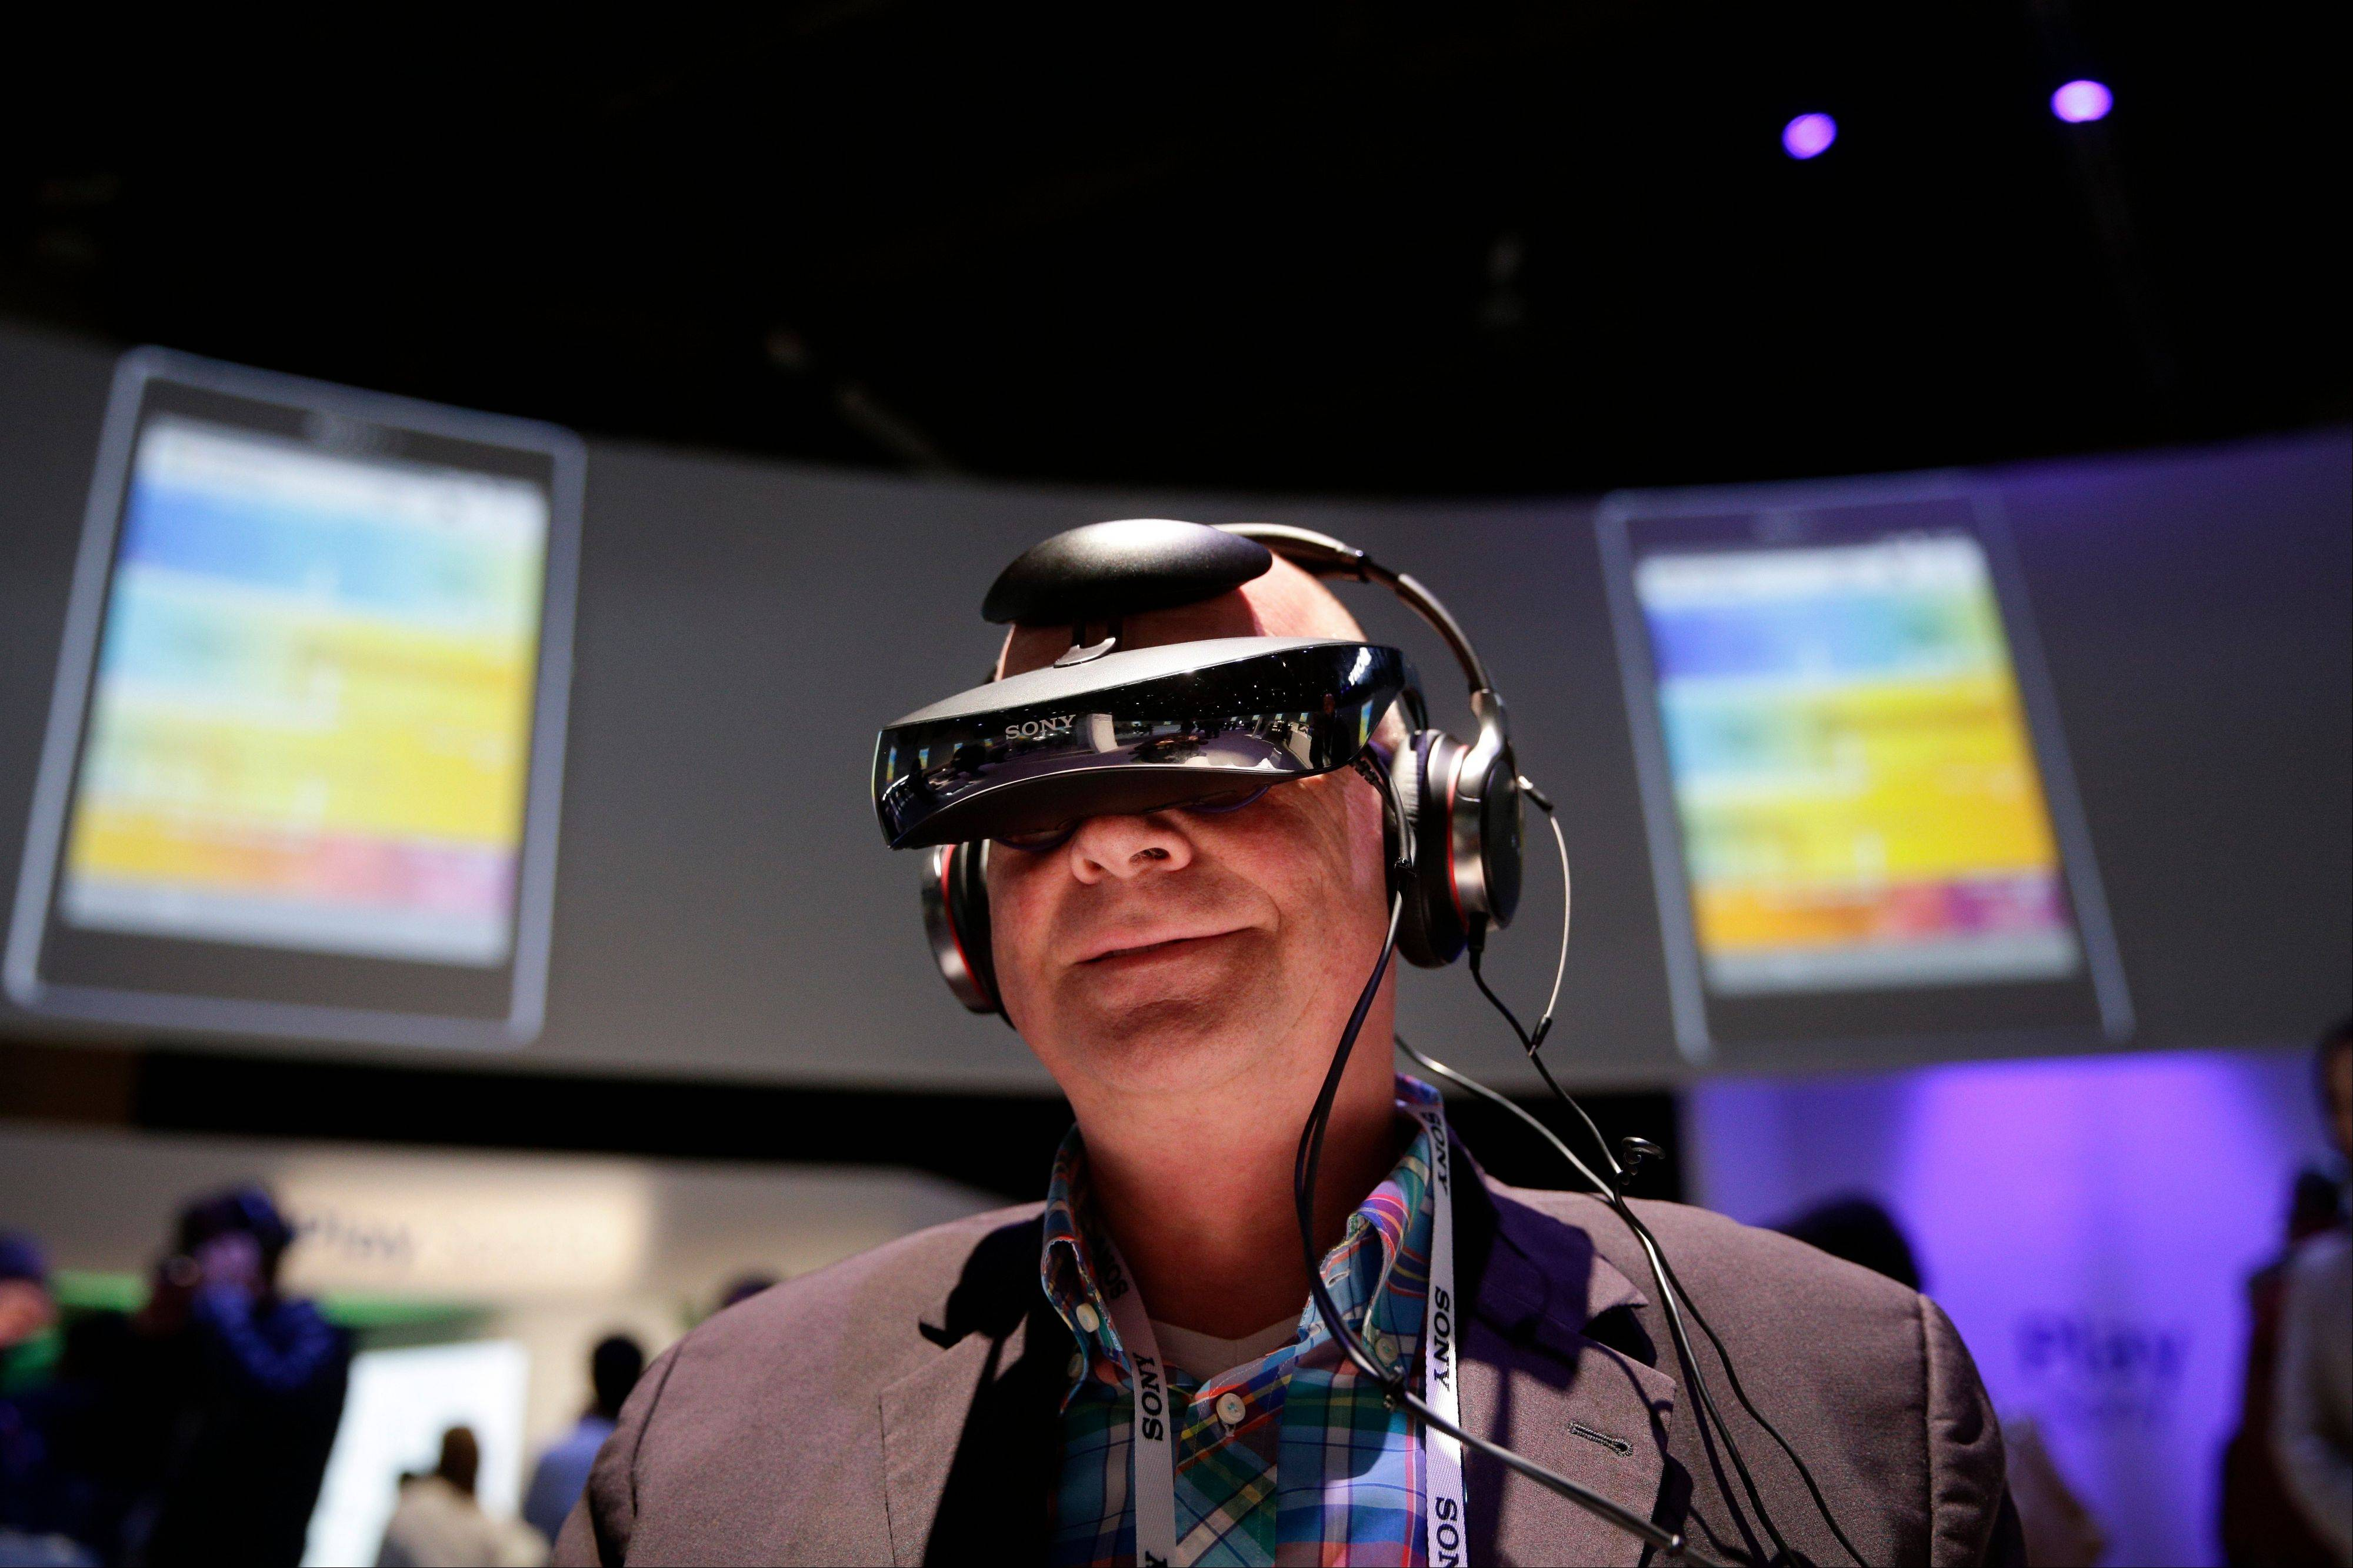 Juergen Boyny, of Germany, watches a video clip with a personal viewing device at the Sony booth at the International Consumer Electronics Show last week in Las Vegas.